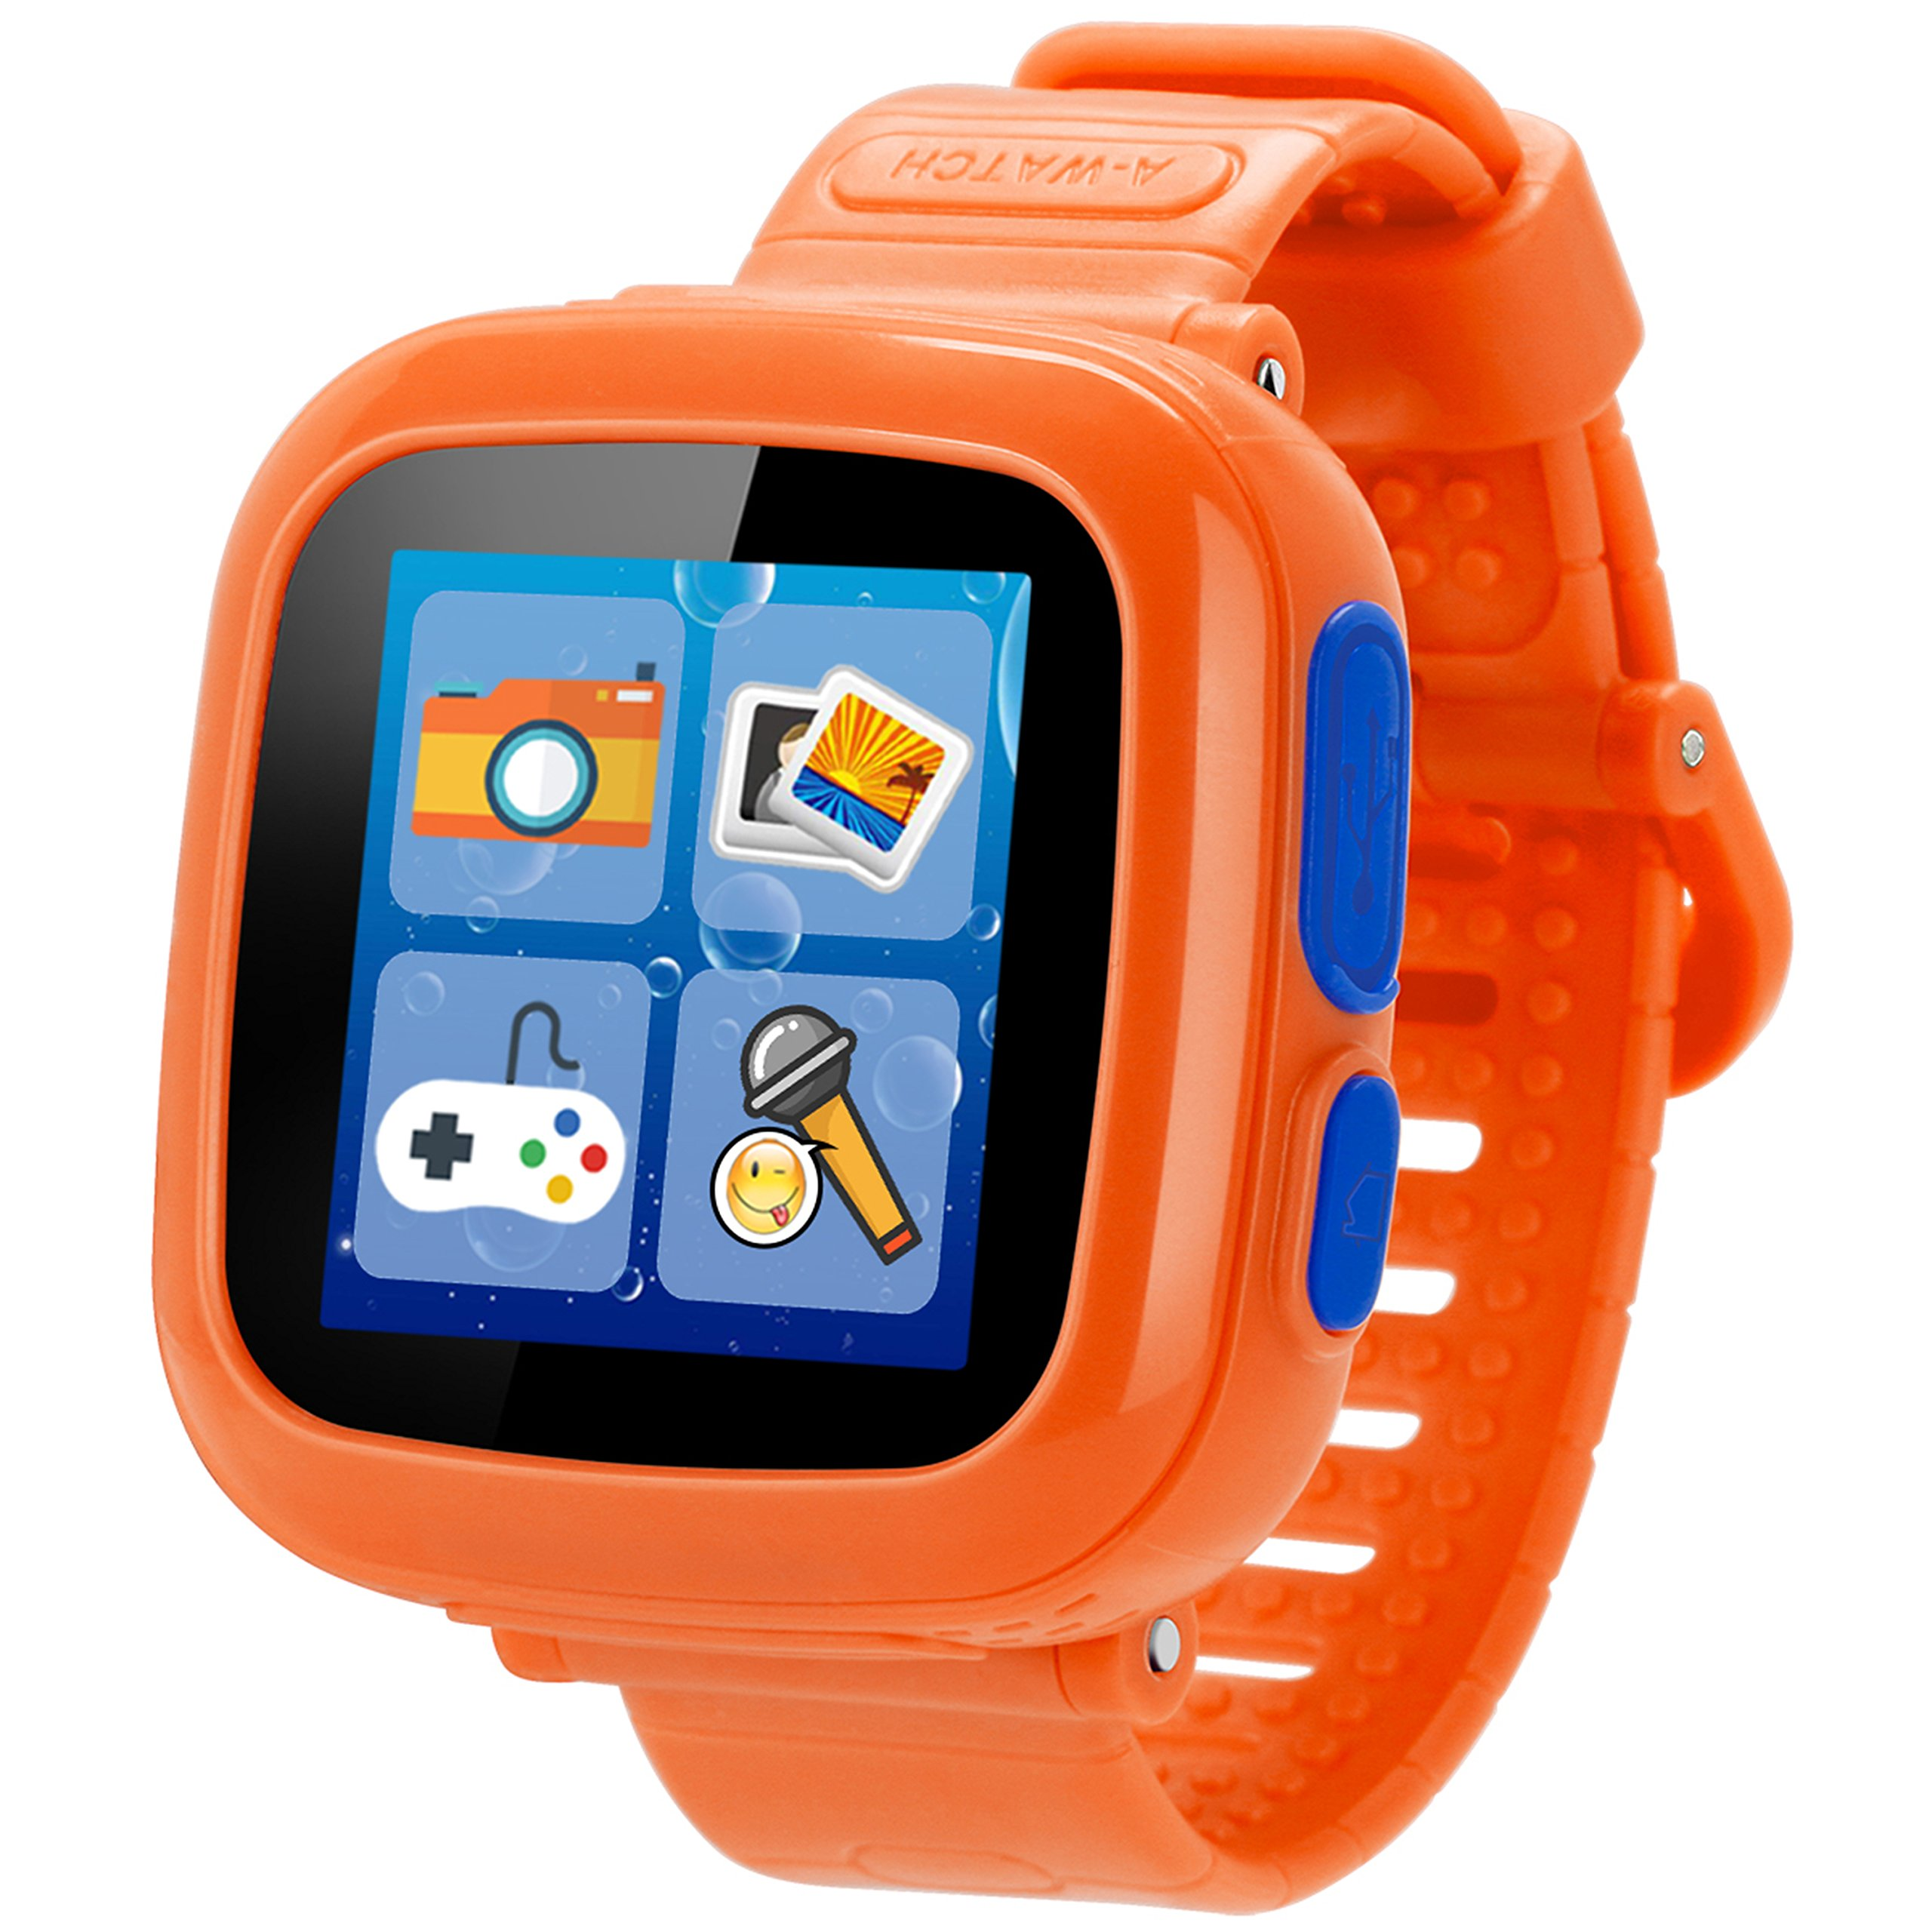 Buy Gbd Game Smart Watch For Kids Children With Camera Touch